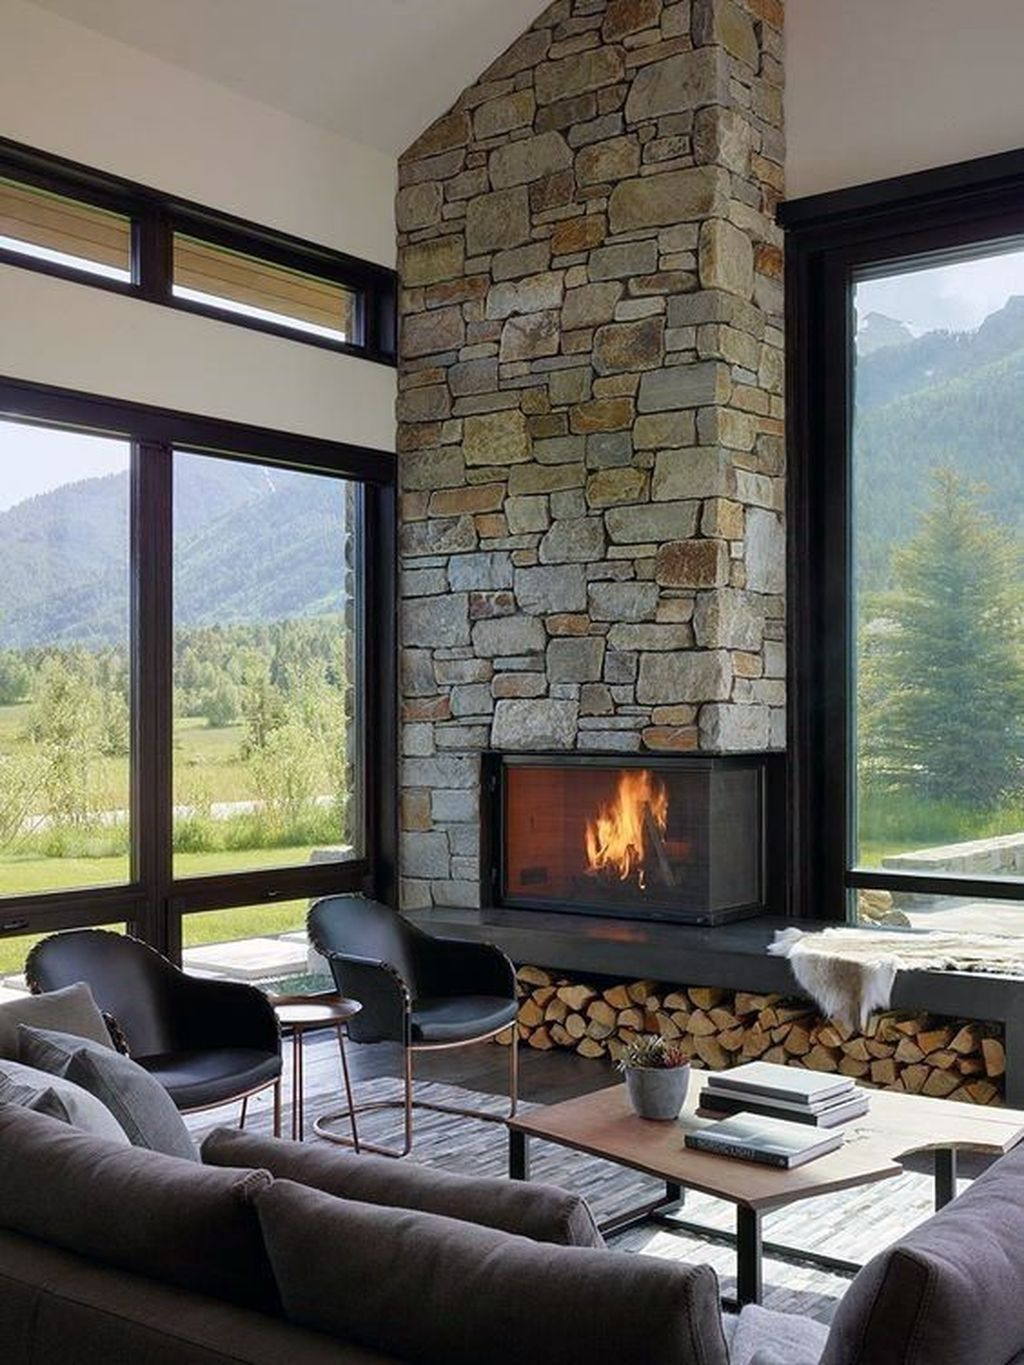 Living Room With Fireplace Design Ideas: 44 Stunning Corner Fireplace Ideas For Your Living Room